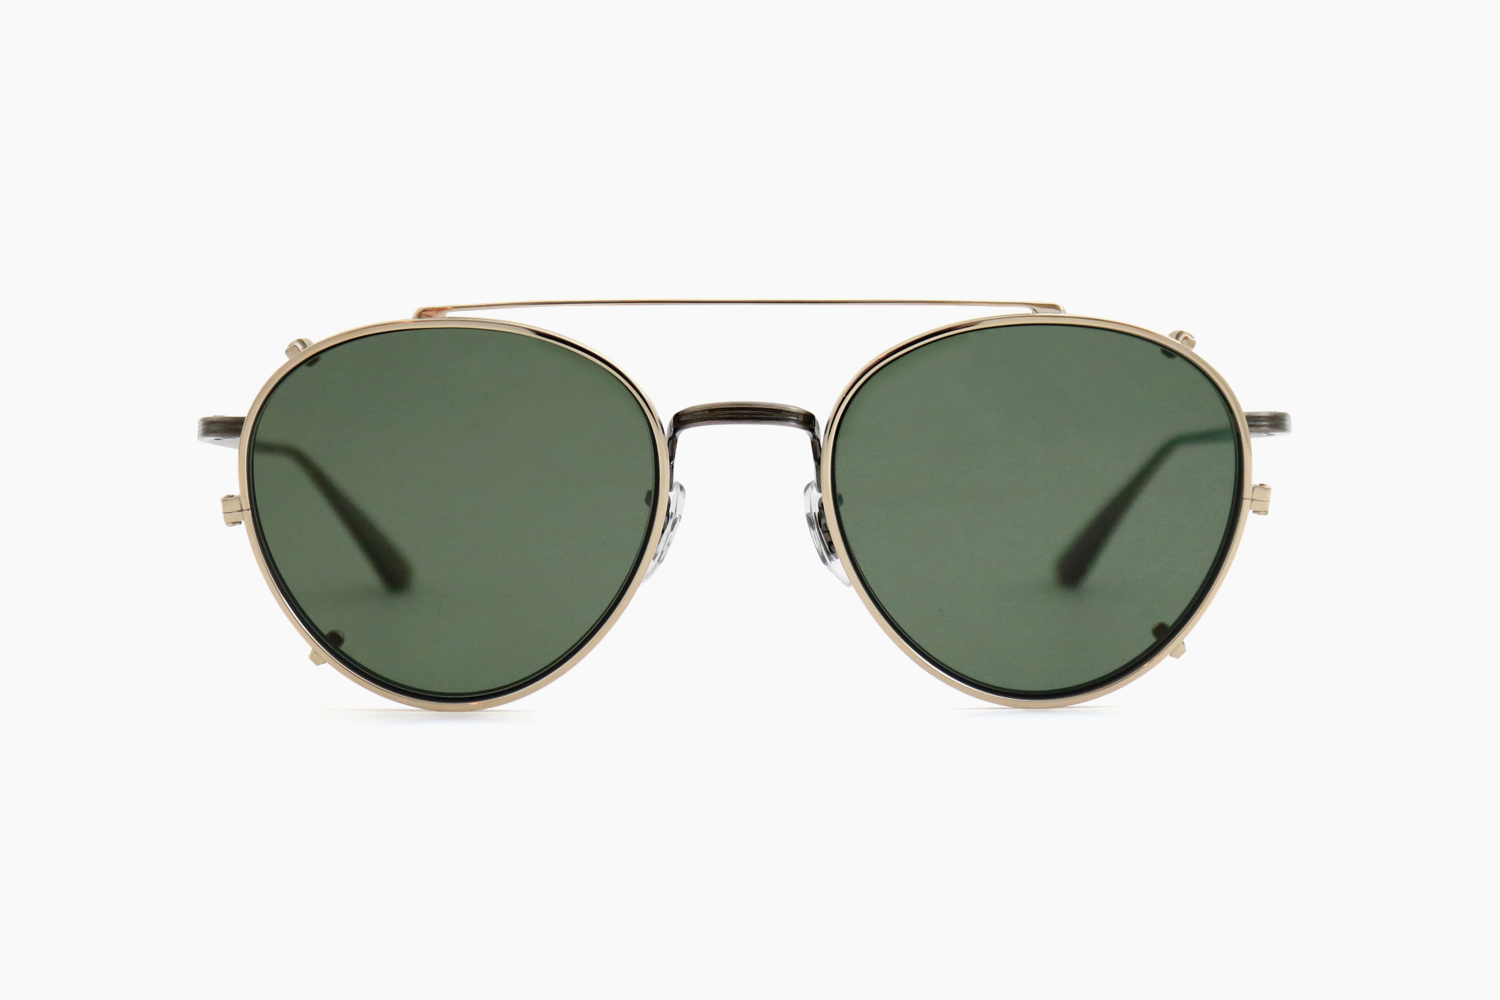 BROWNSTONE CLIP - 52929A White Gold|OLIVER PEOPLES